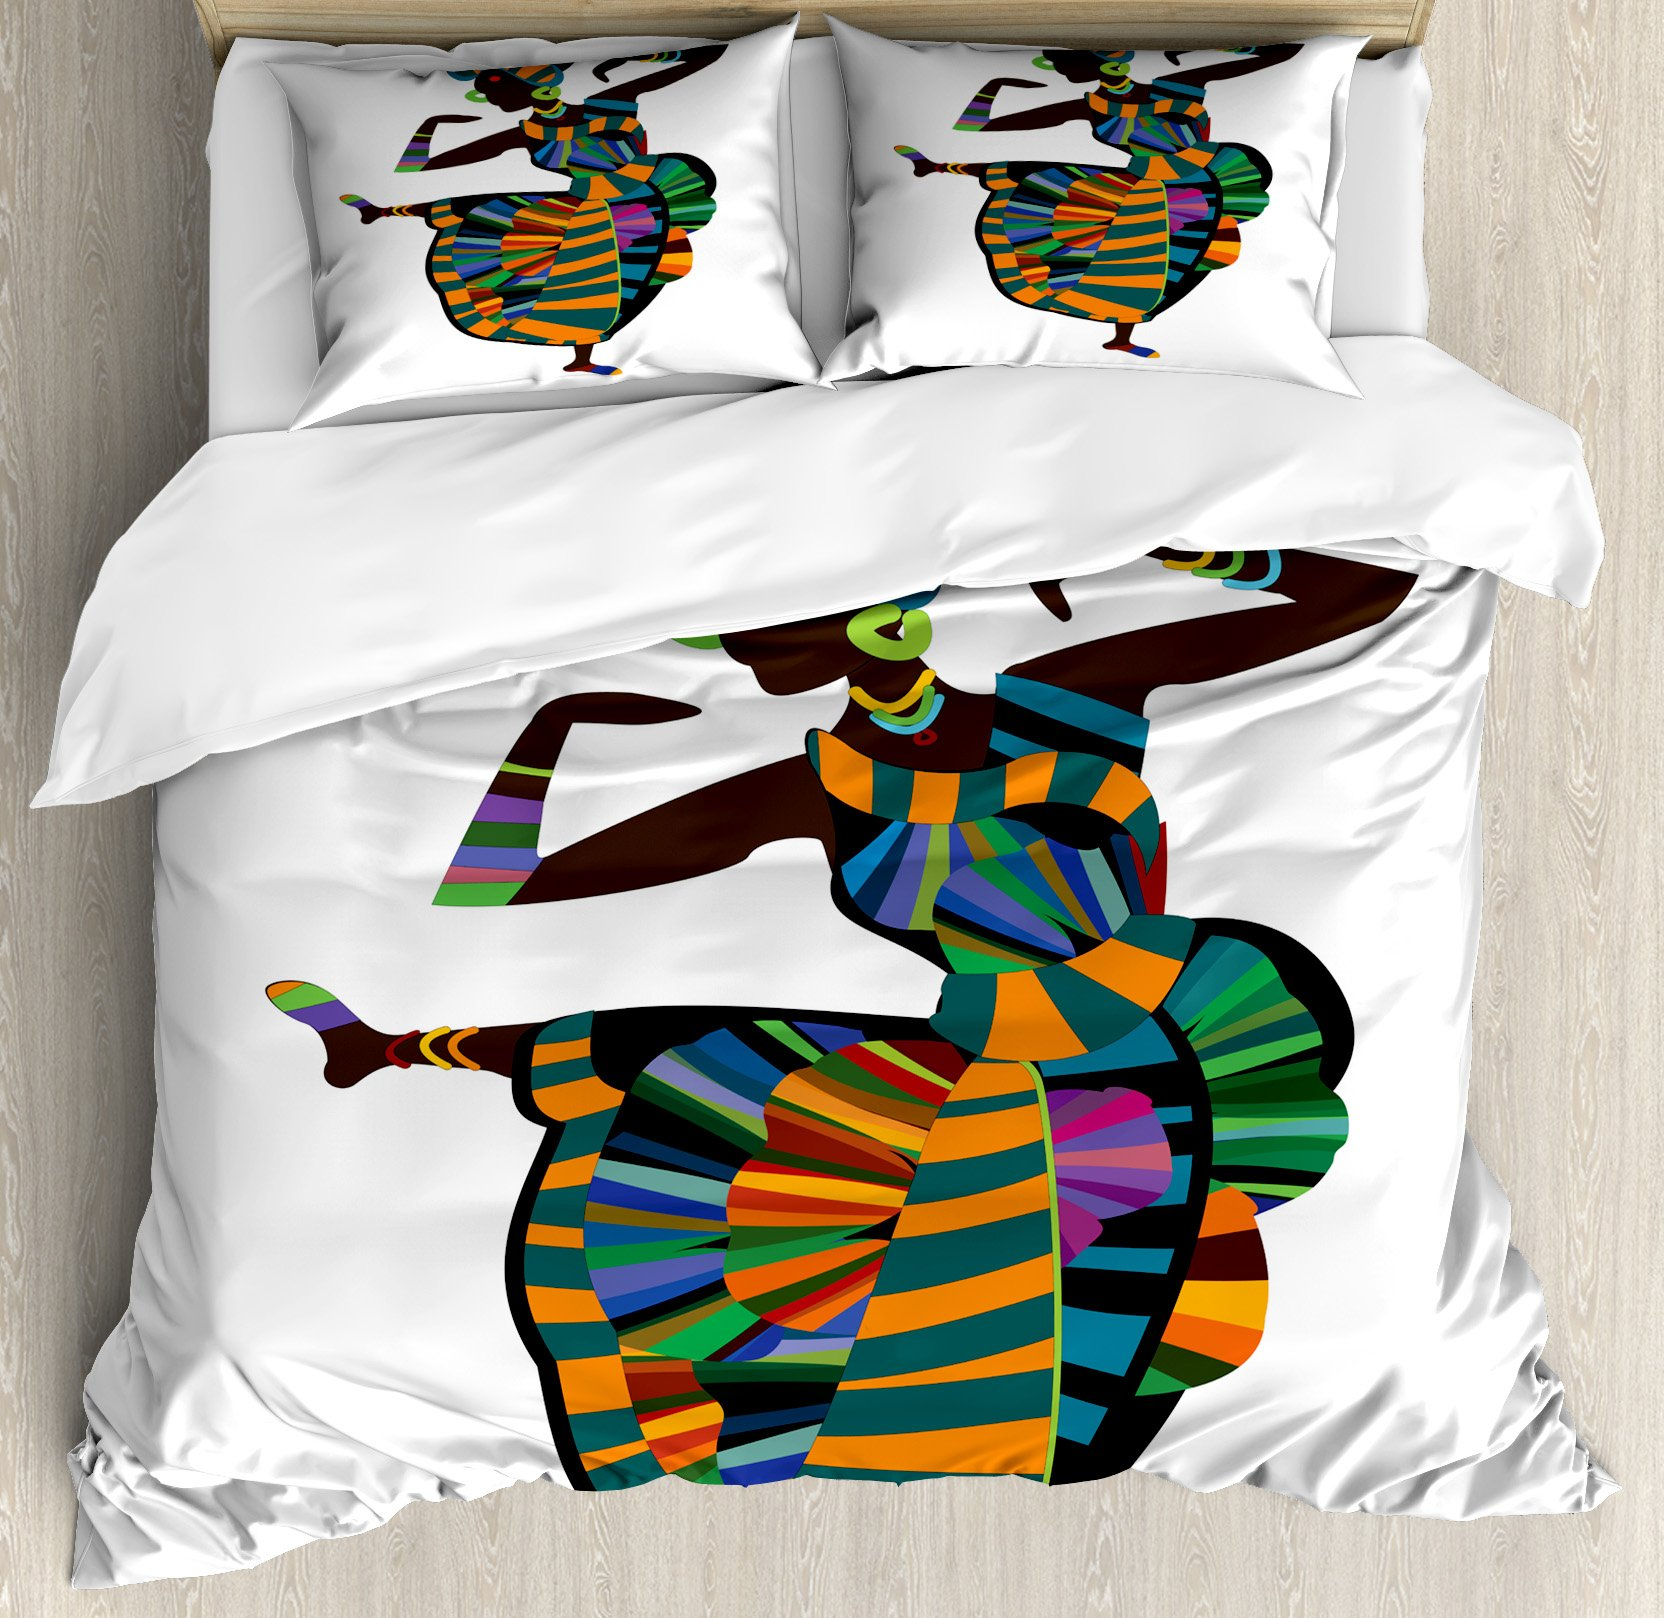 African Woman King Size Duvet Cover Set by Ambesonne, Black Girl in a Traditional Dress Performing an Ethnic Dance Native Zulu, Decorative 3 Piece Bedding Set with 2 Pillow Shams, Multicolor